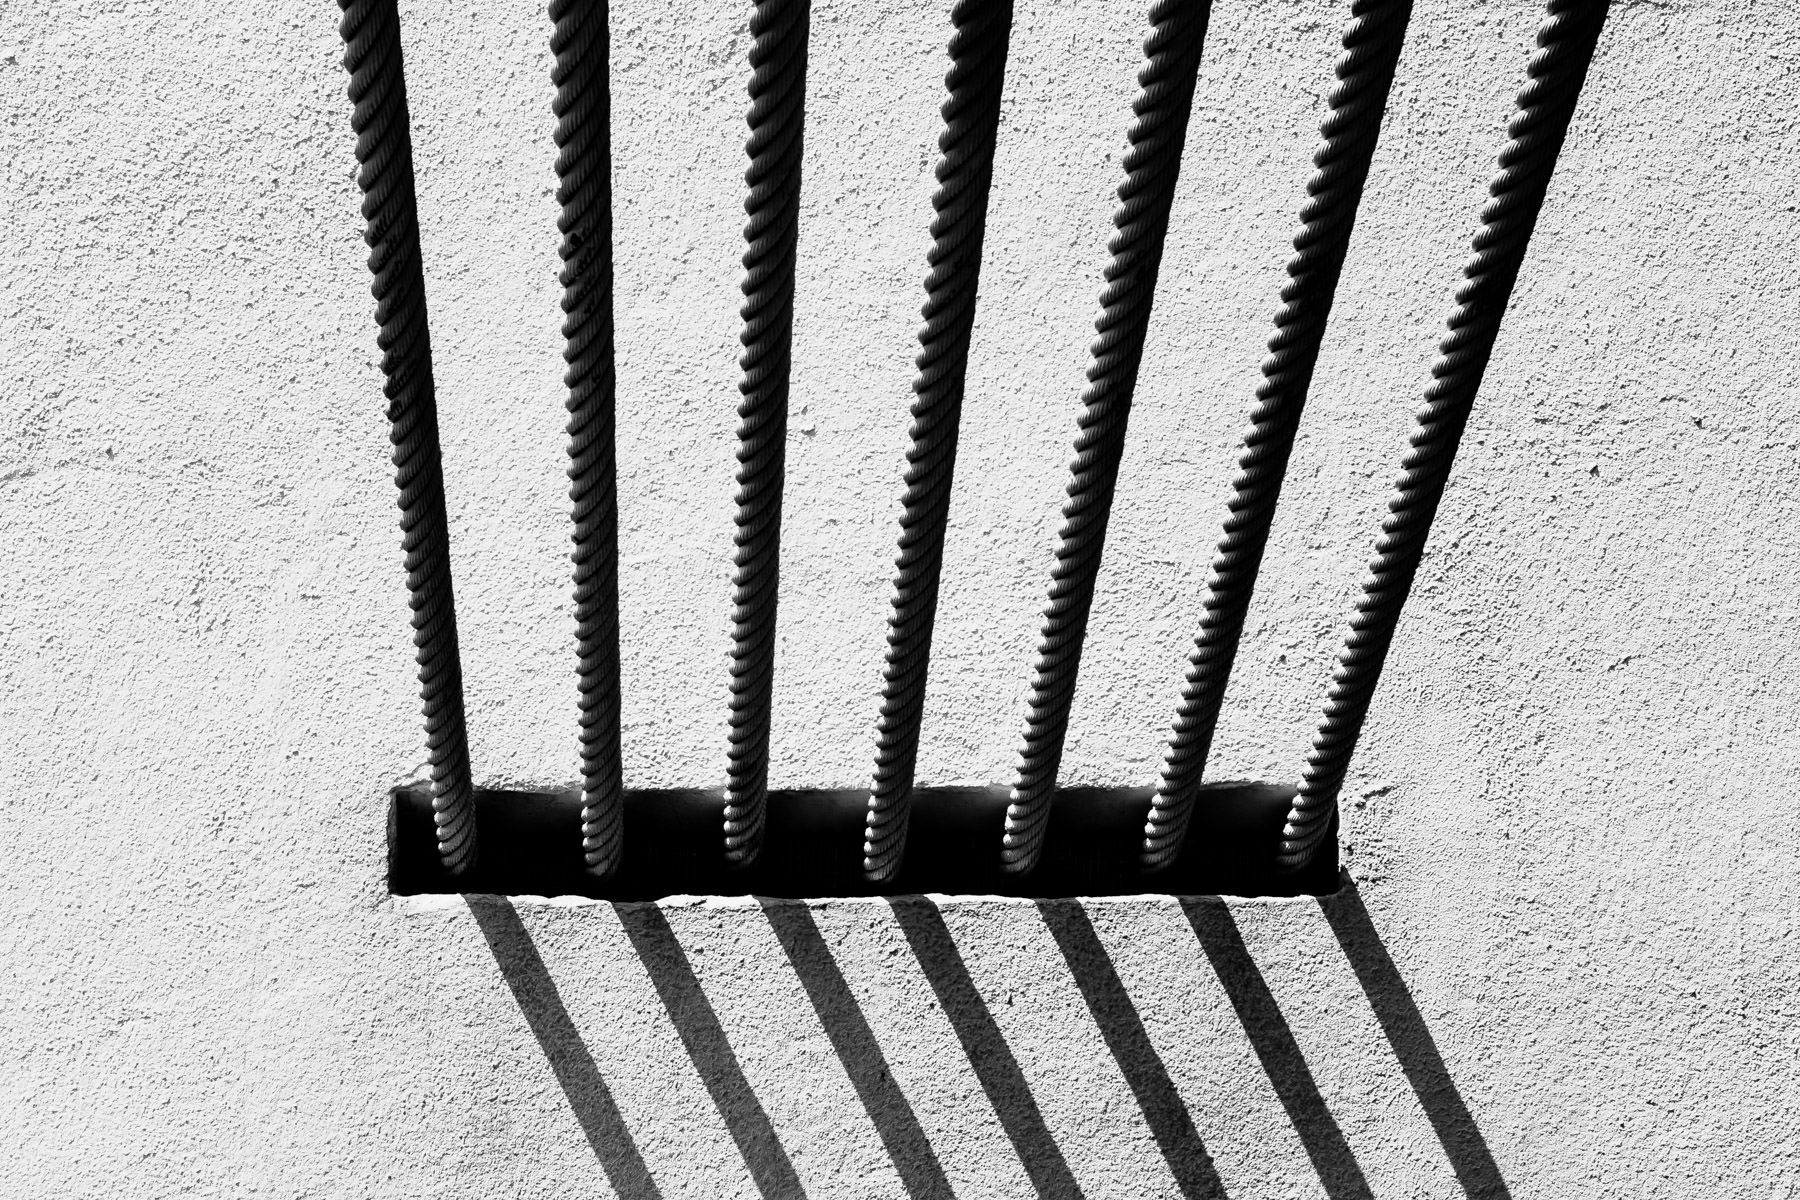 Detail of support cables at the Waco Suspension Bridge, Waco, Texas.